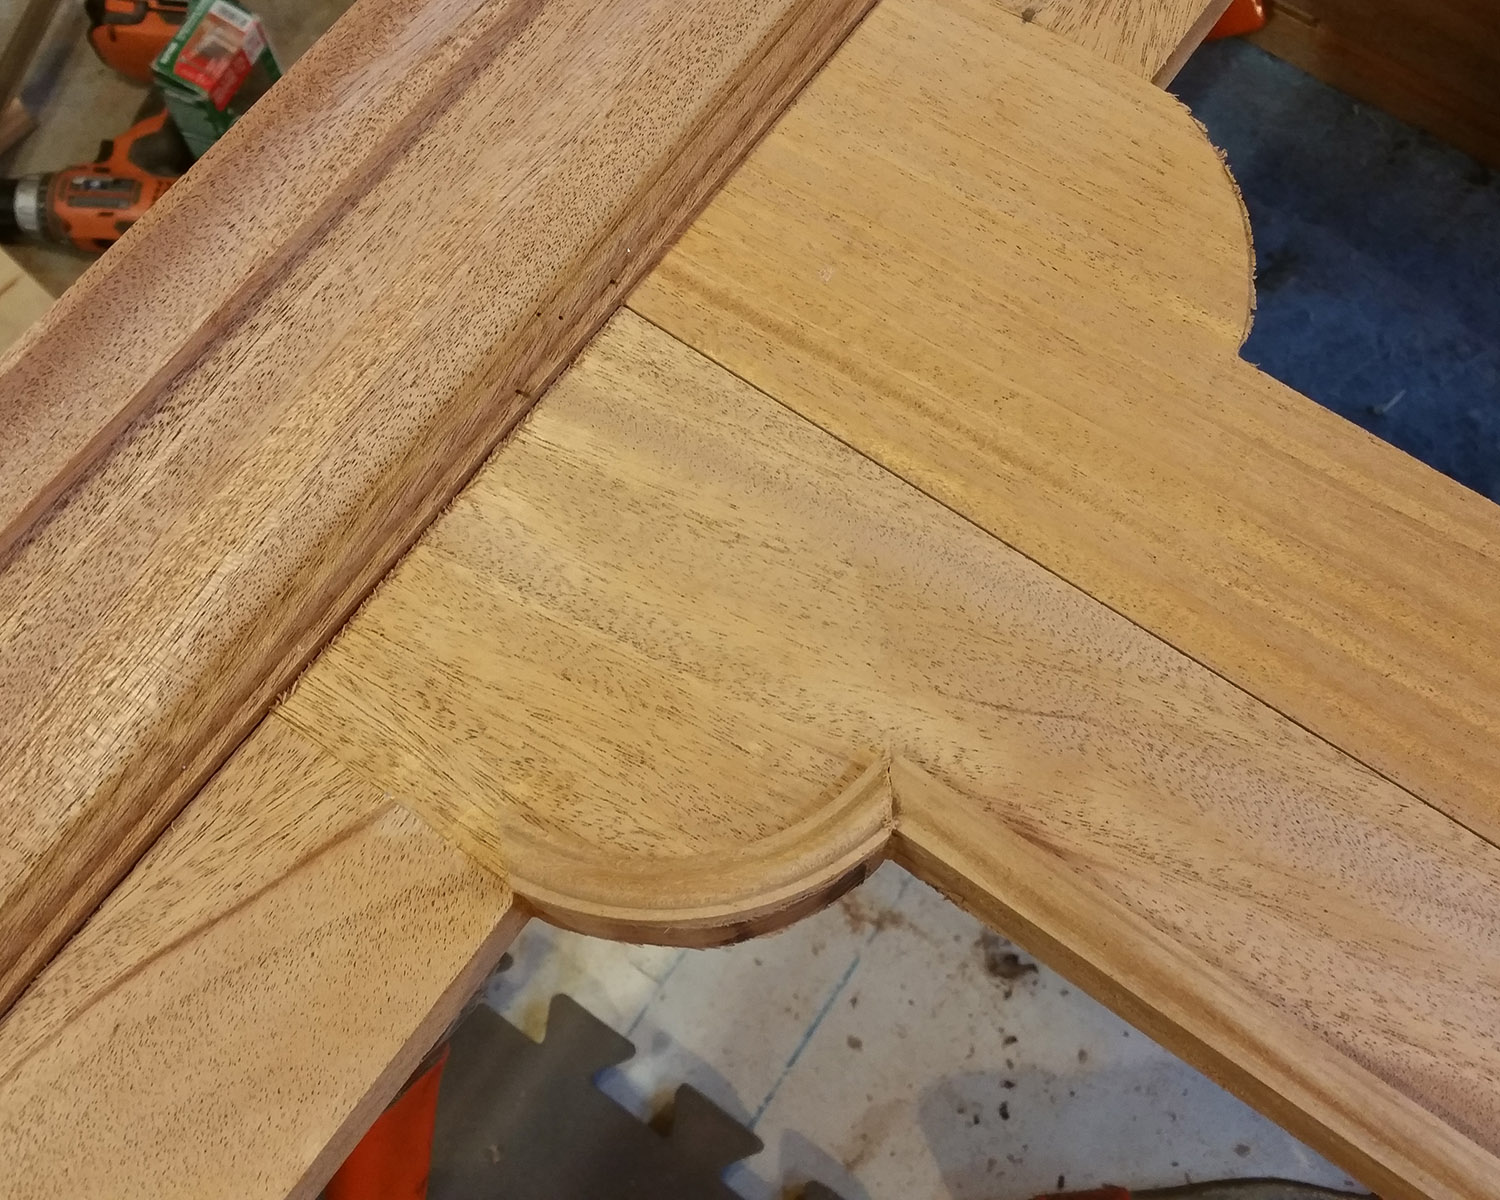 Install the corner pieces as you install the straight sections, and trim them to fit.